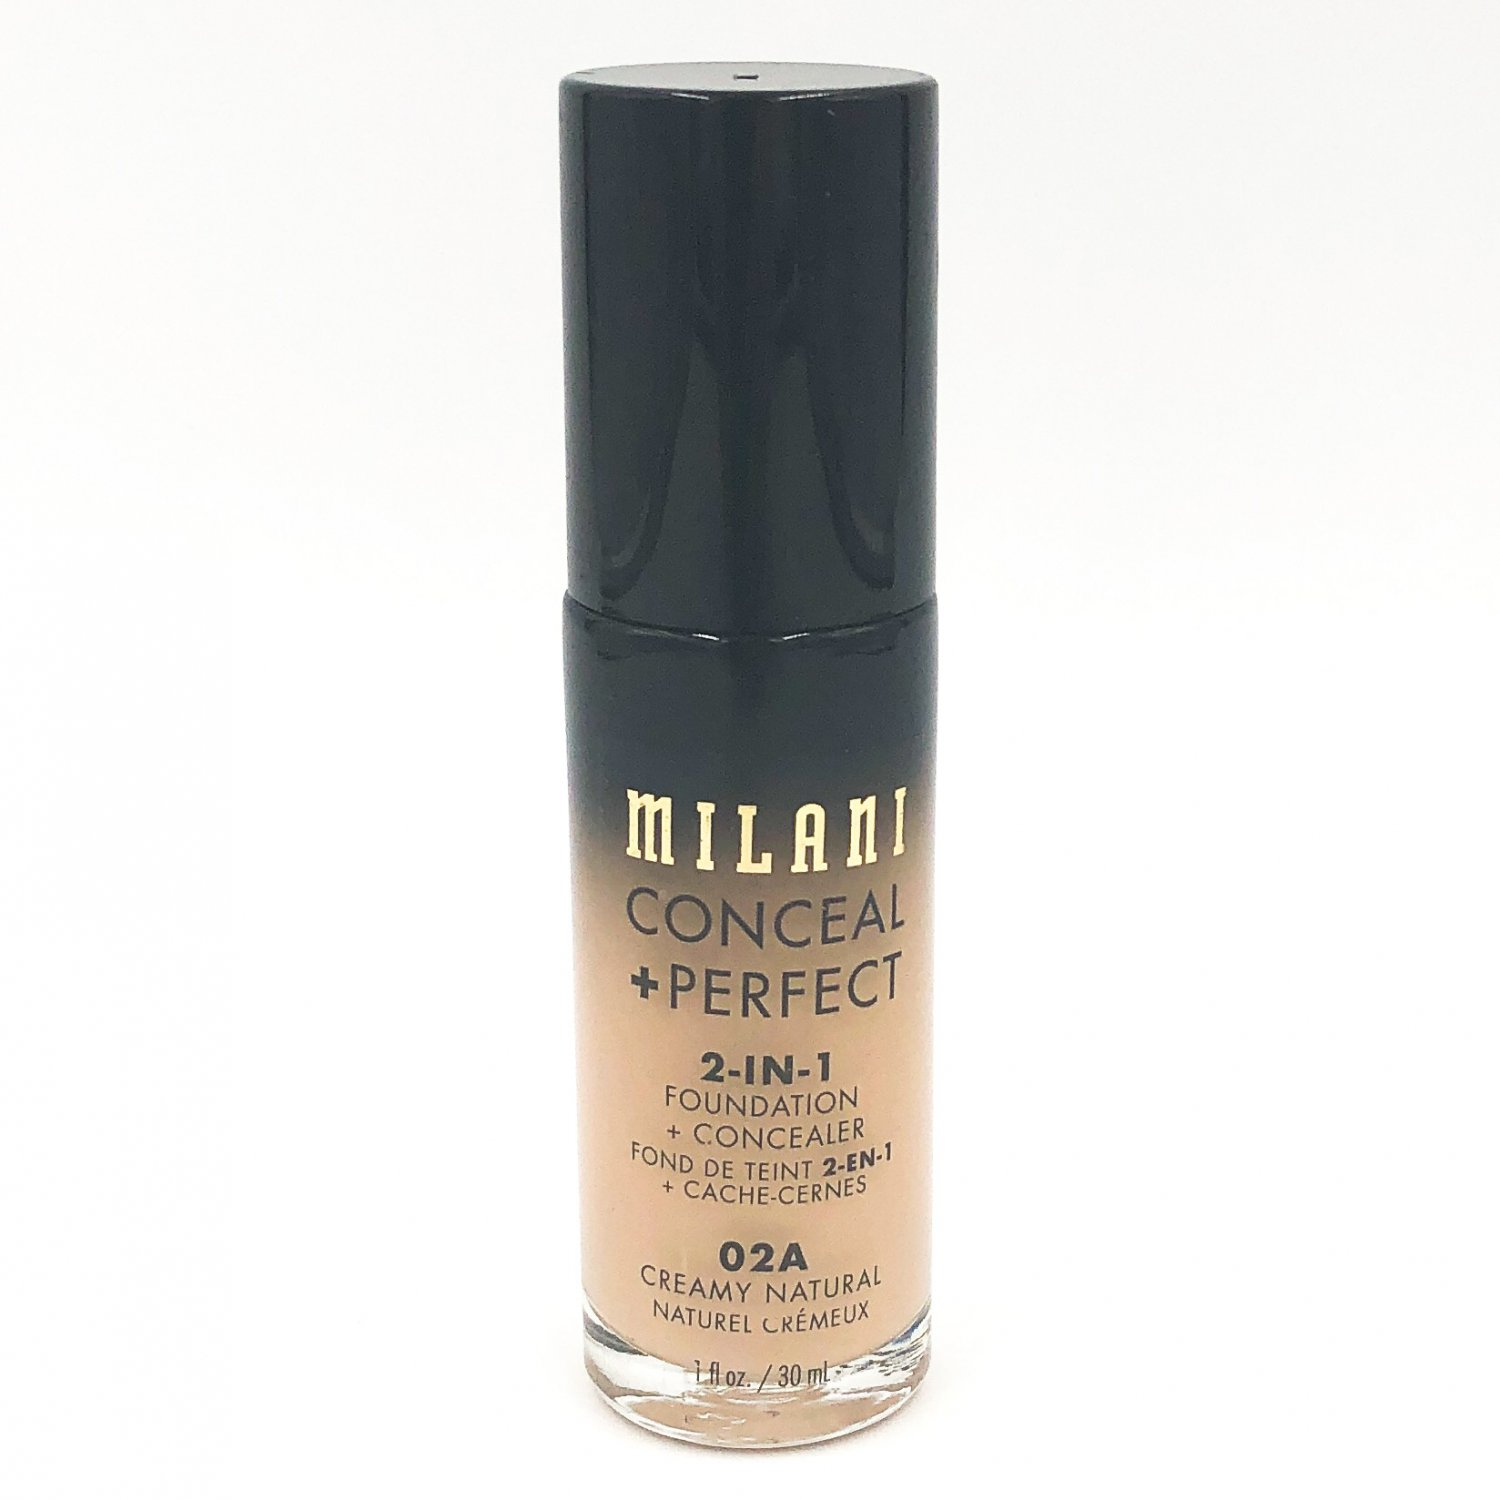 Milani Conceal + Perfect 2-in-1 Foundation + Concealer 02A Creamy Natural